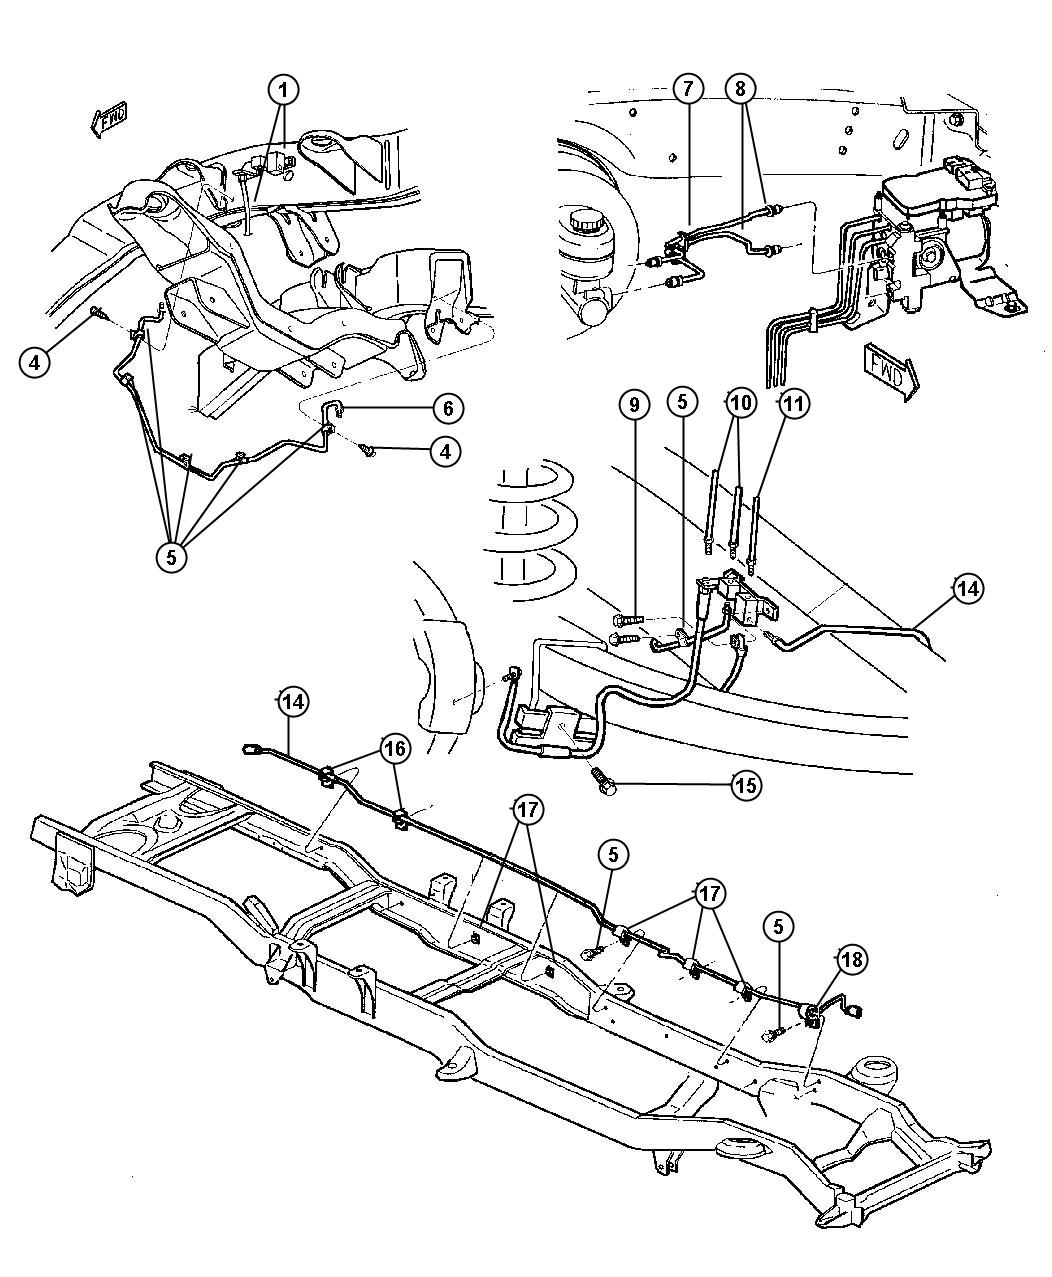 dodge dakota 4x4 frame diagram